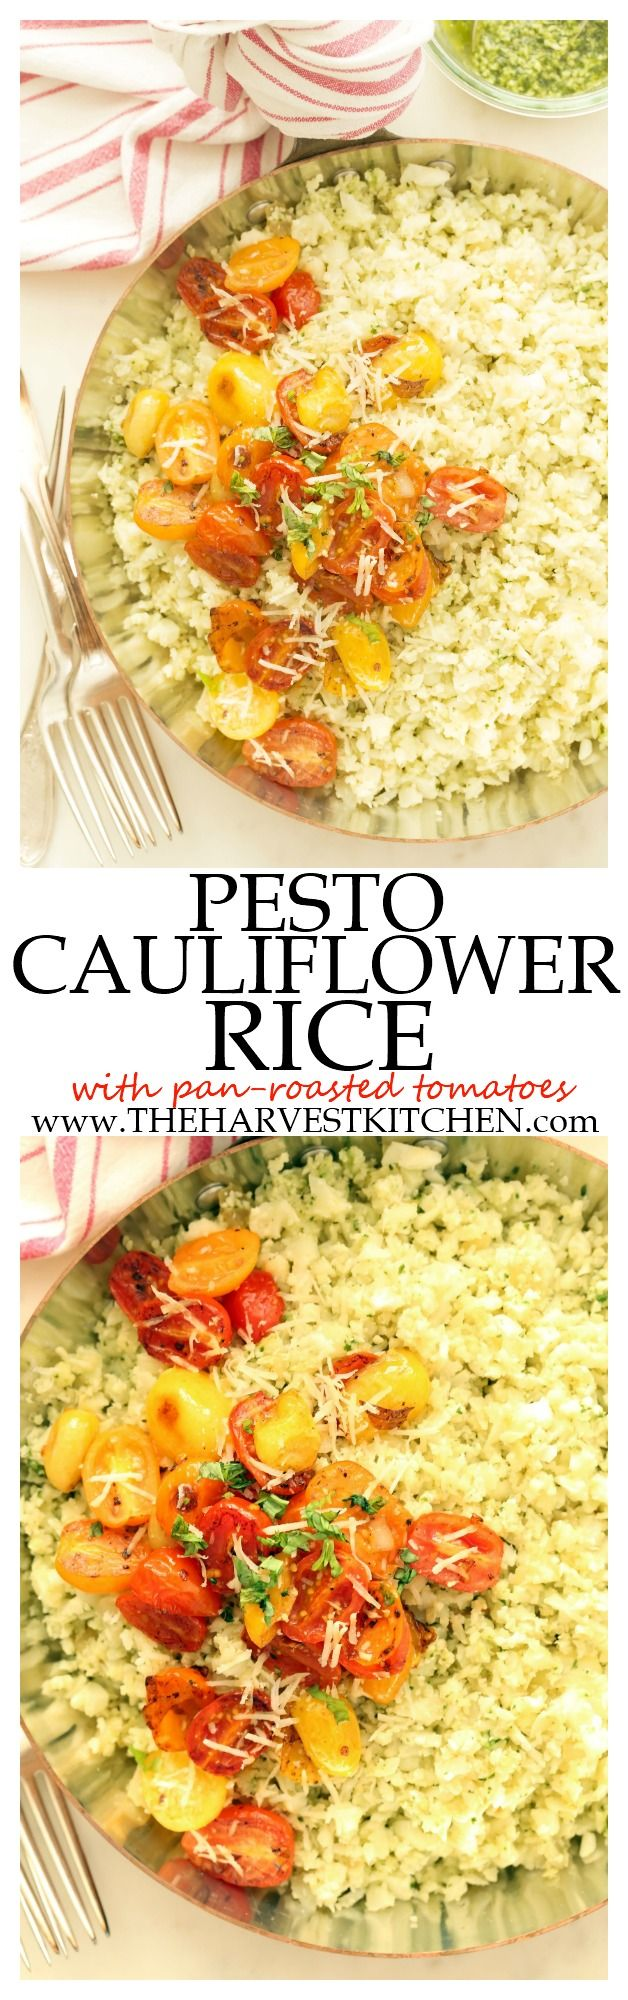 You are going to want this Pesto Cauliflower Rice in your life!!!  It's light and delicious and makes a perfect detox side dish to grilled chicken or fish!  | detox recipes | | detox side dish | | clean eating| | healthy recipes | | healthy side dish recipes | @theharvestkitchen.com